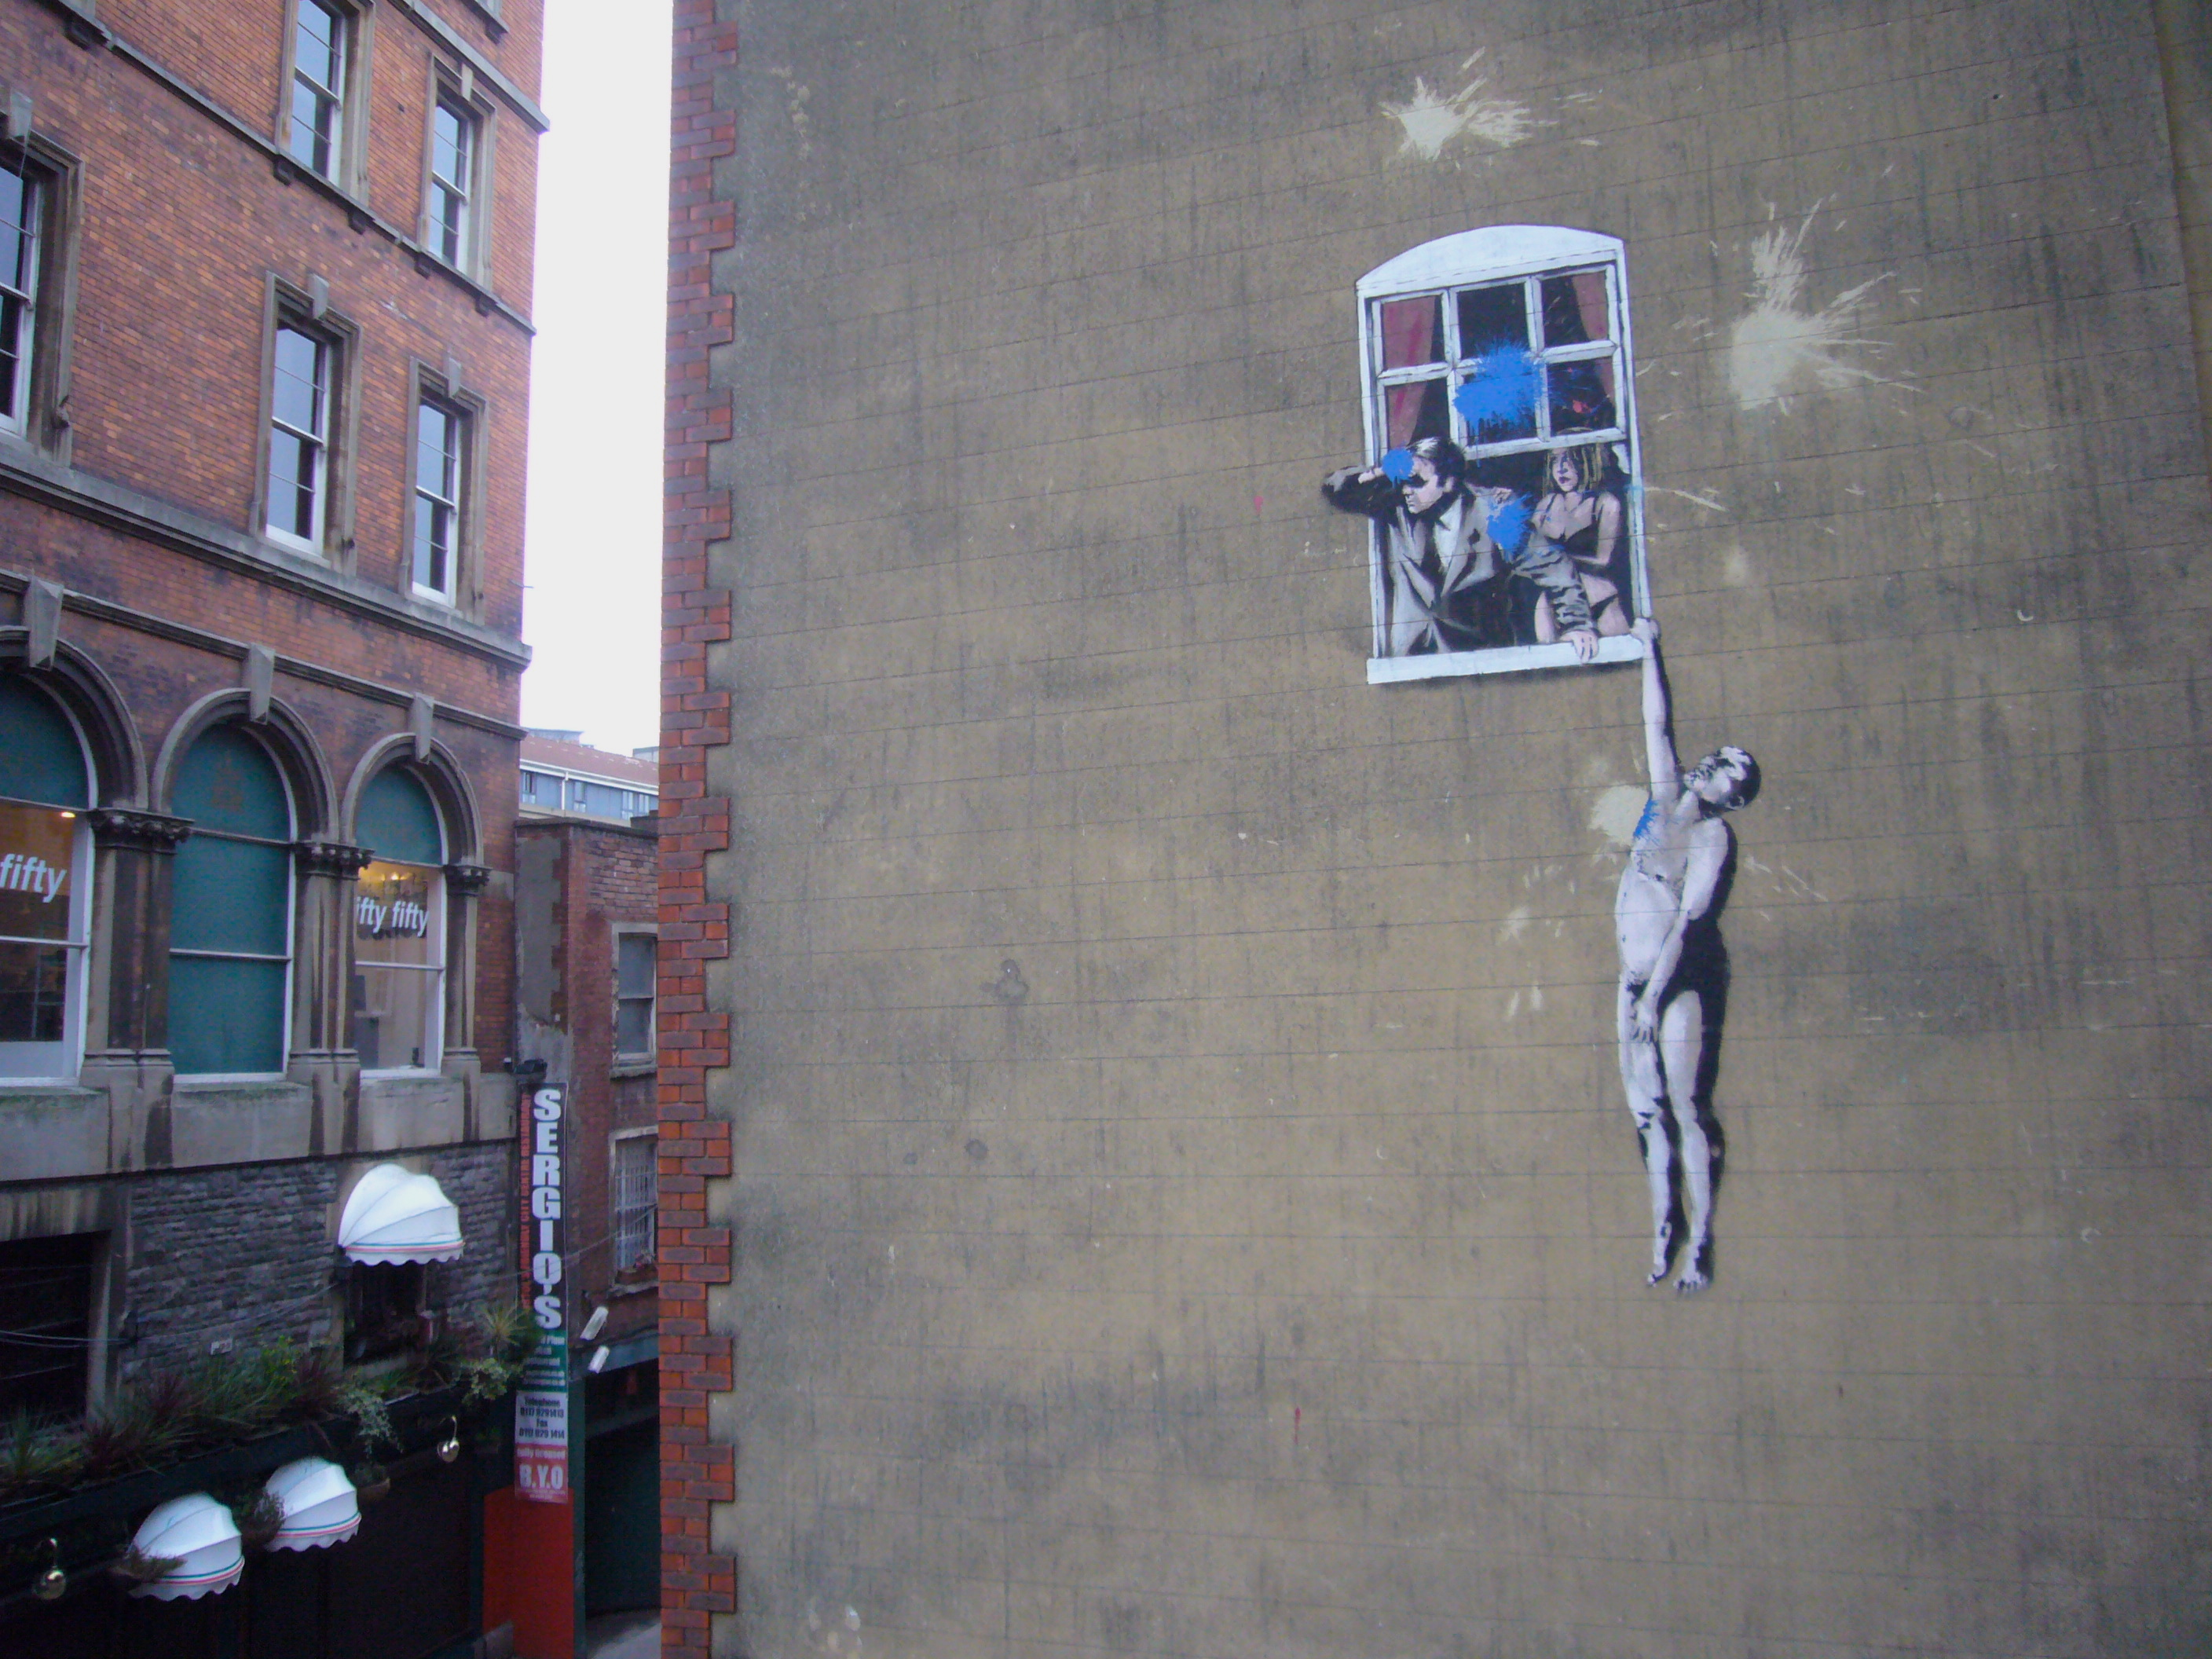 craft and more bristol in bristol banksy and so much more tre lost 3721